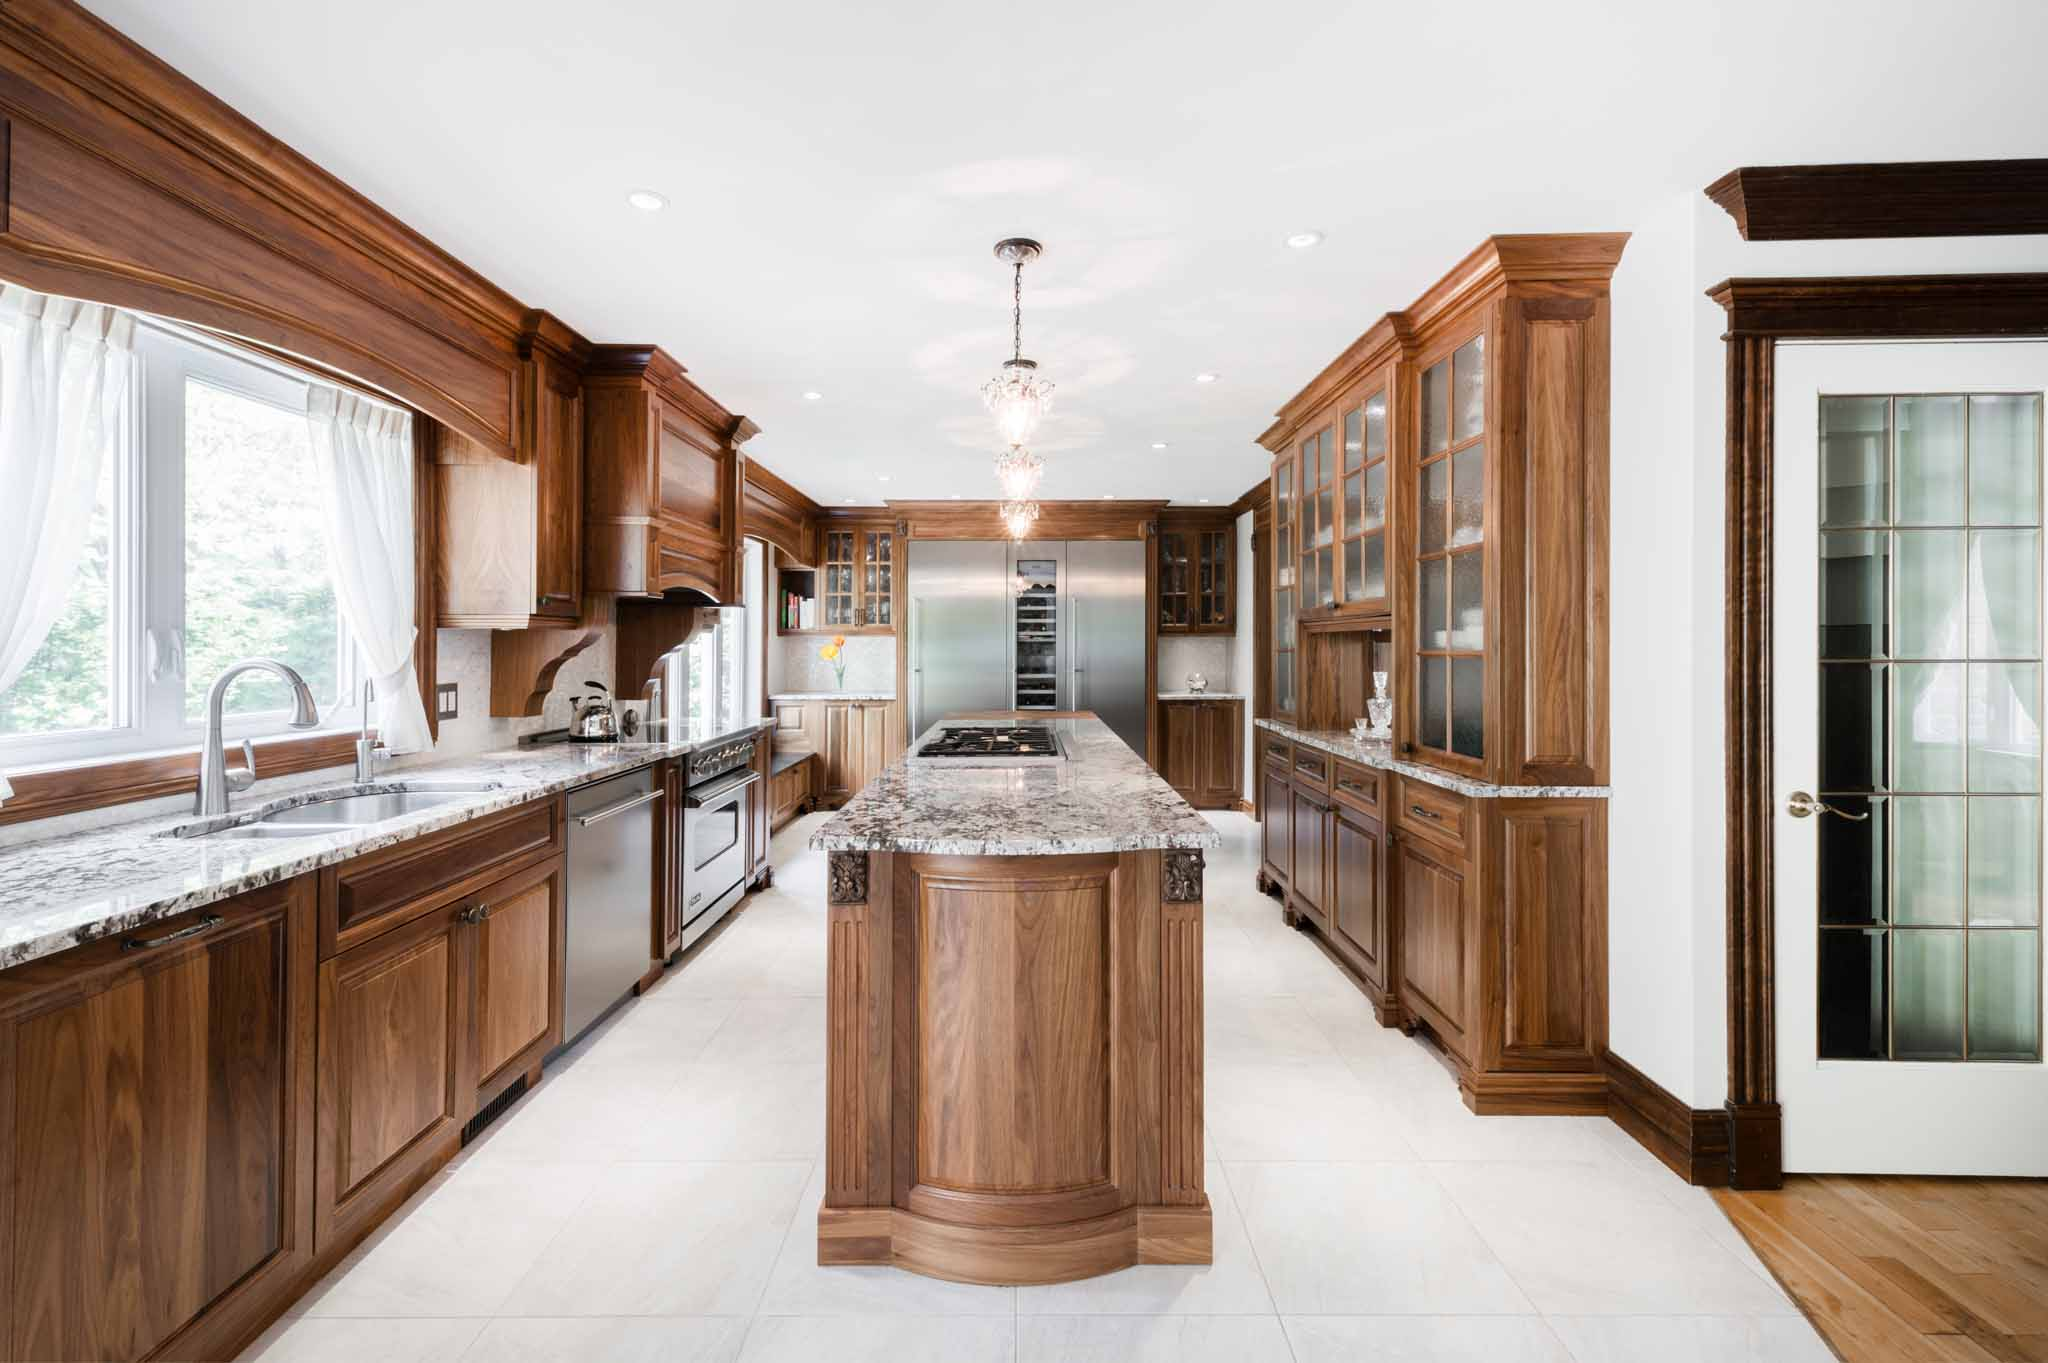 Classic wooden kitchen